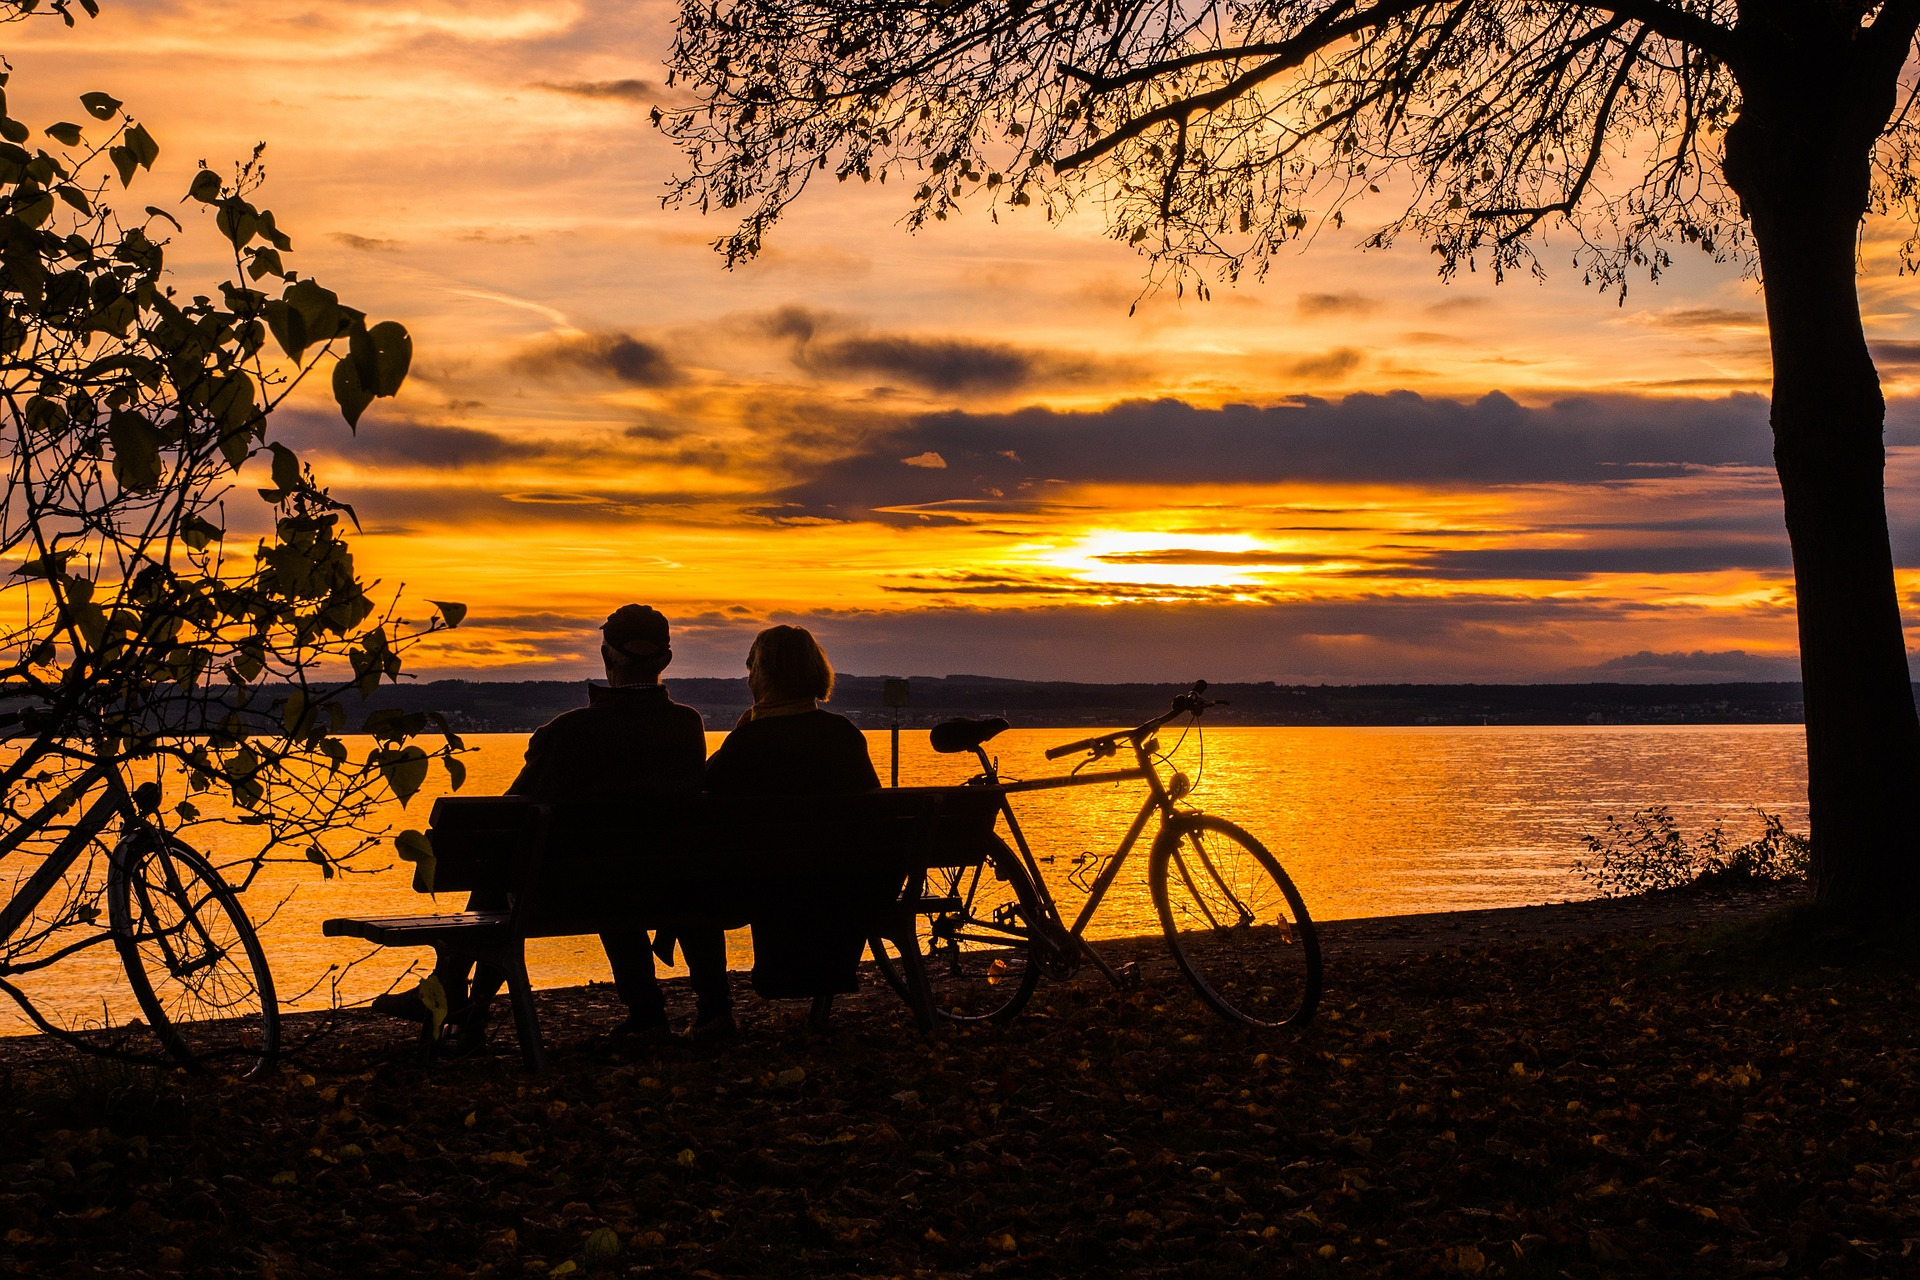 Make positive change for life to overcome relationship issues